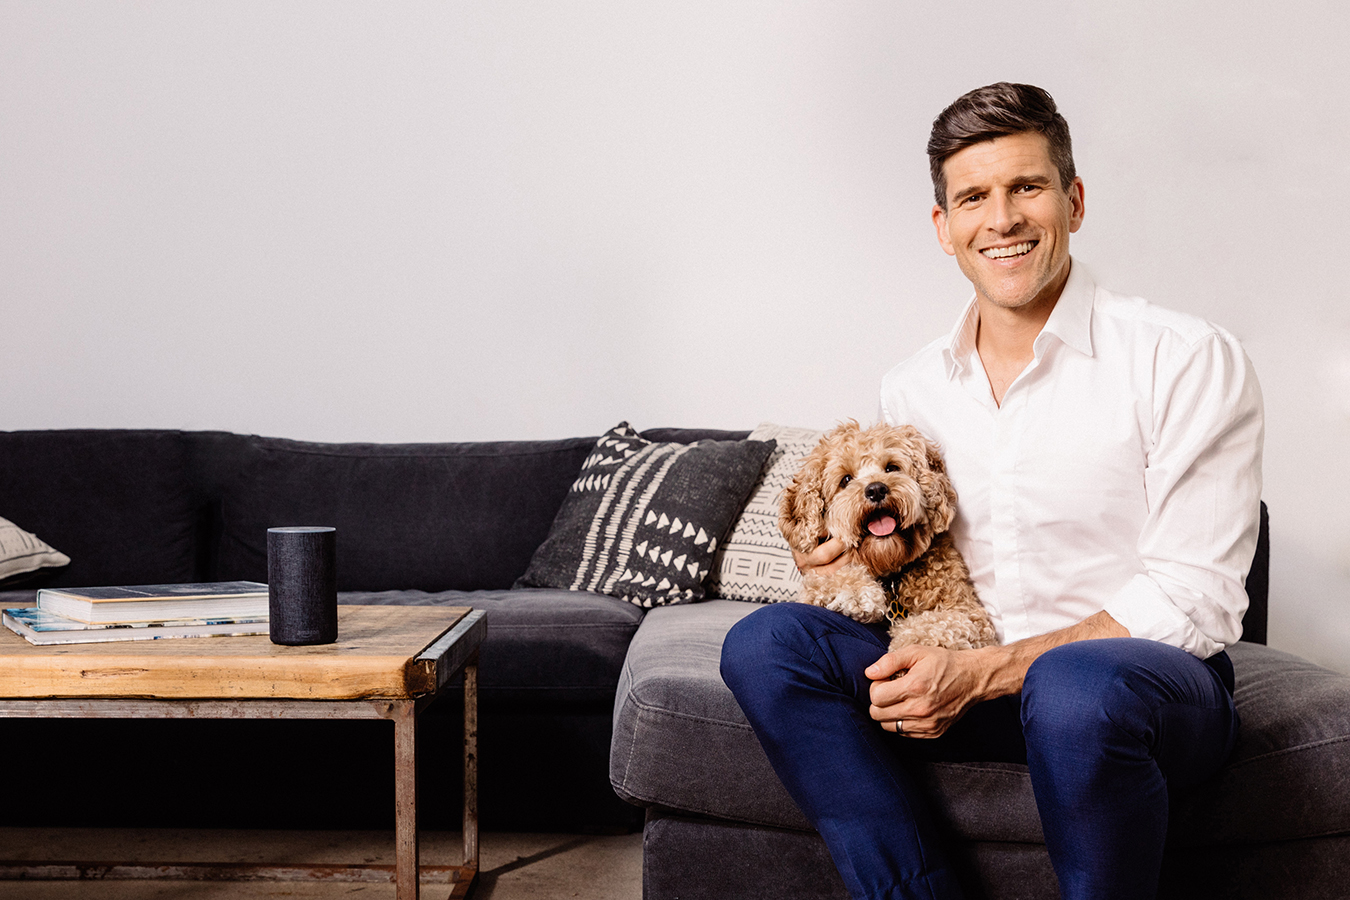 Osher Günsberg and his dog Frankie sit listening to an Audible for Dogs audiobook